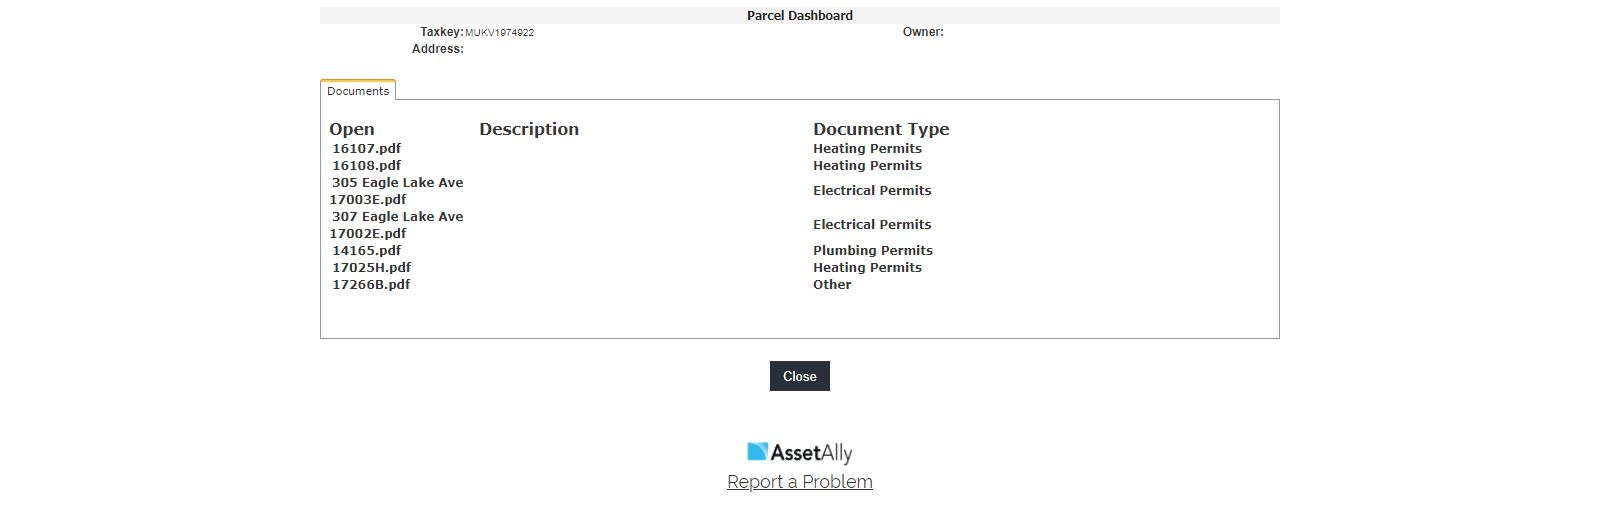 Parcel Documents by Property